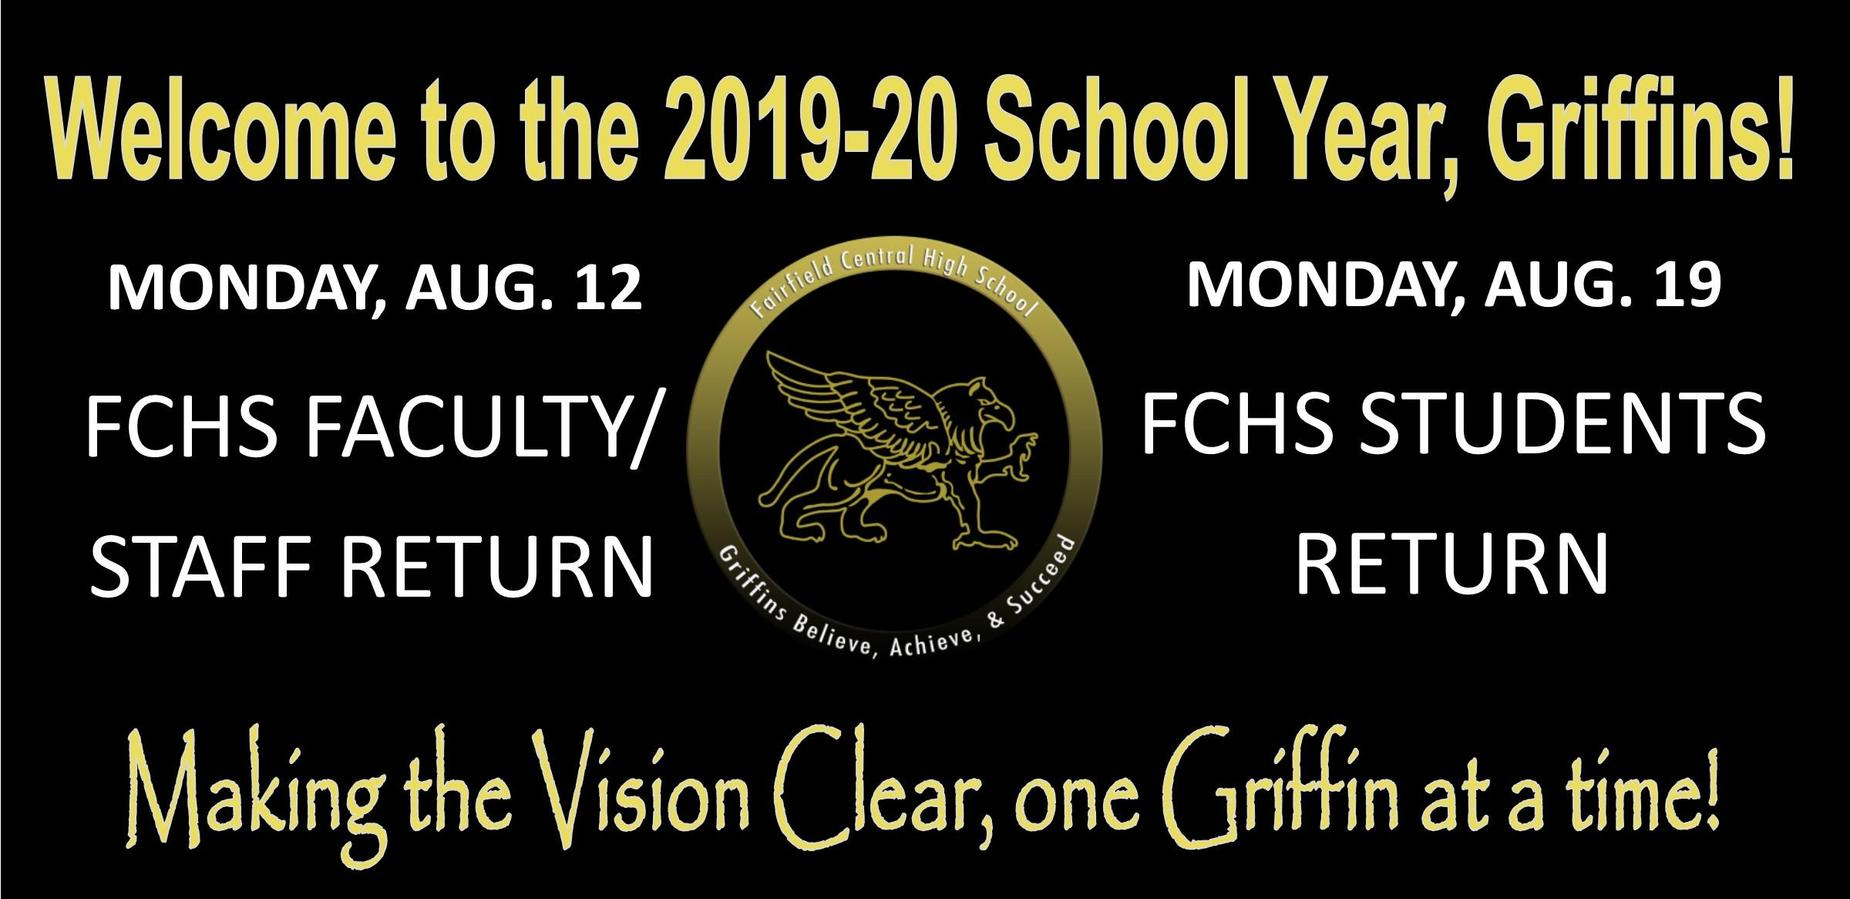 Welcome to the 2019-20 School Year, Griffins! MONDAY, AUG. 12 FCHS FACULTY/ STAFF RETURN; MONDAY, AUG. 19 FCHS STUDENTS RETURN; Making the Vision Clear, one Griffin at a time!